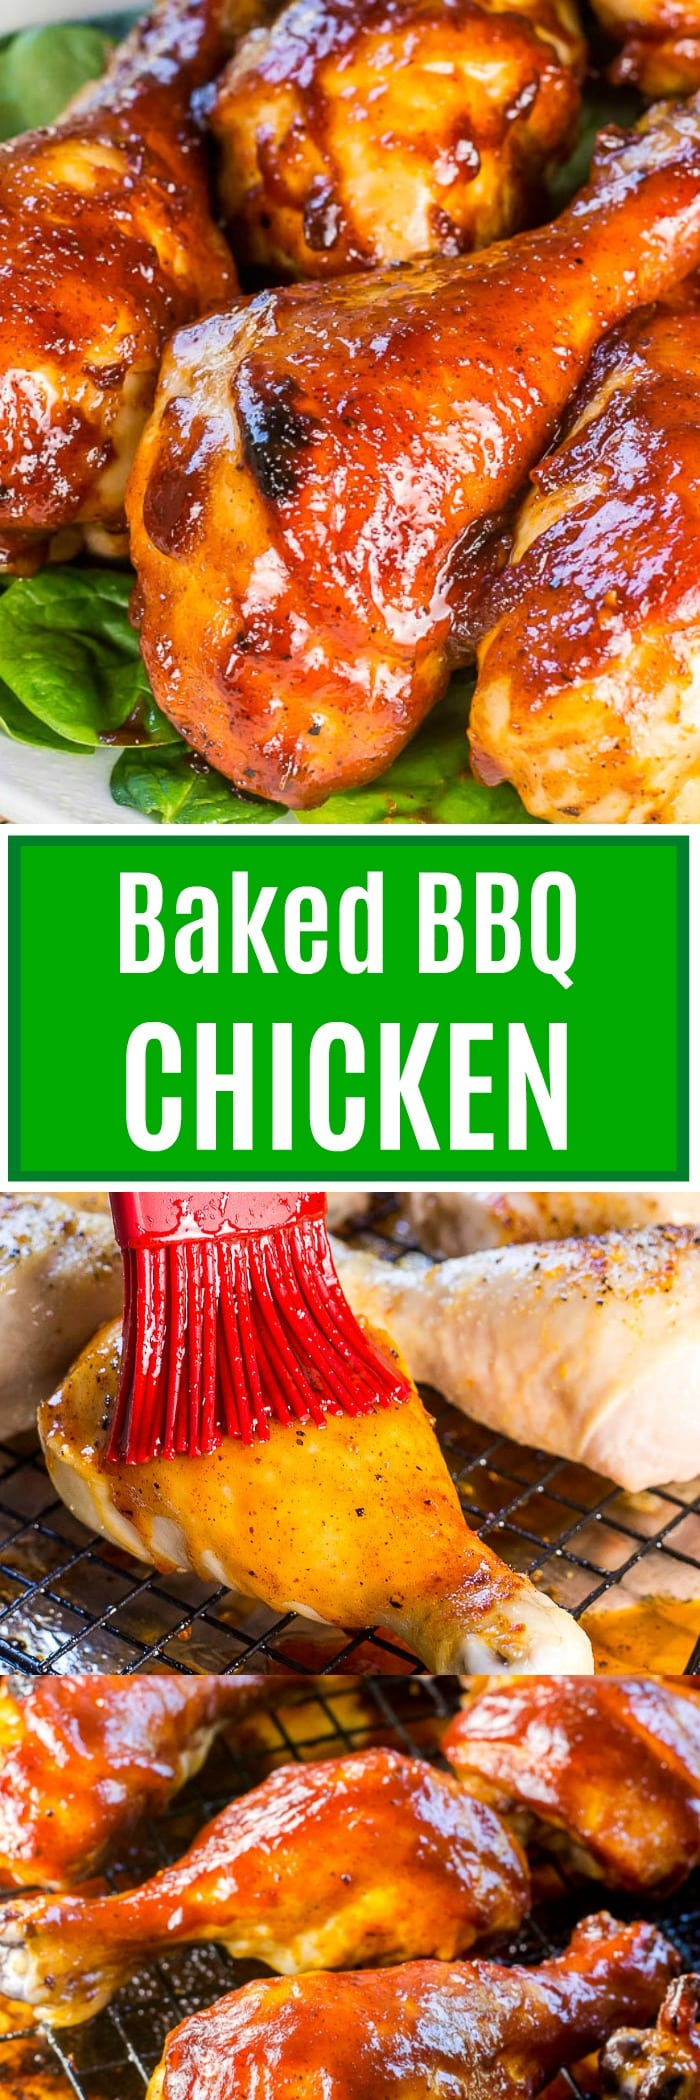 Baked BBQ Chicken Long Pin